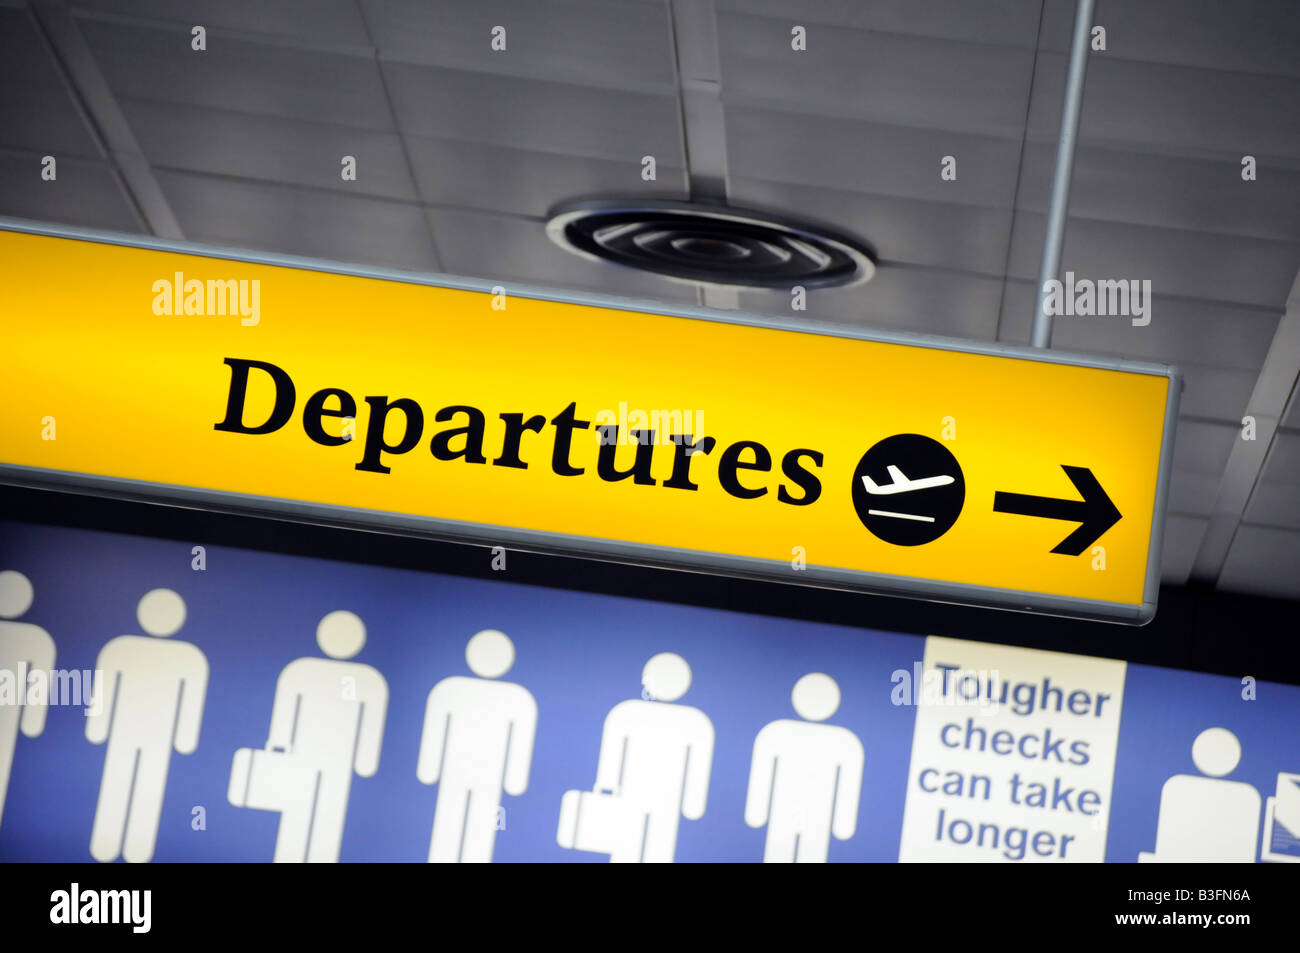 Royalty free photograph of departure sign for emigrating people at airport. - Stock Image